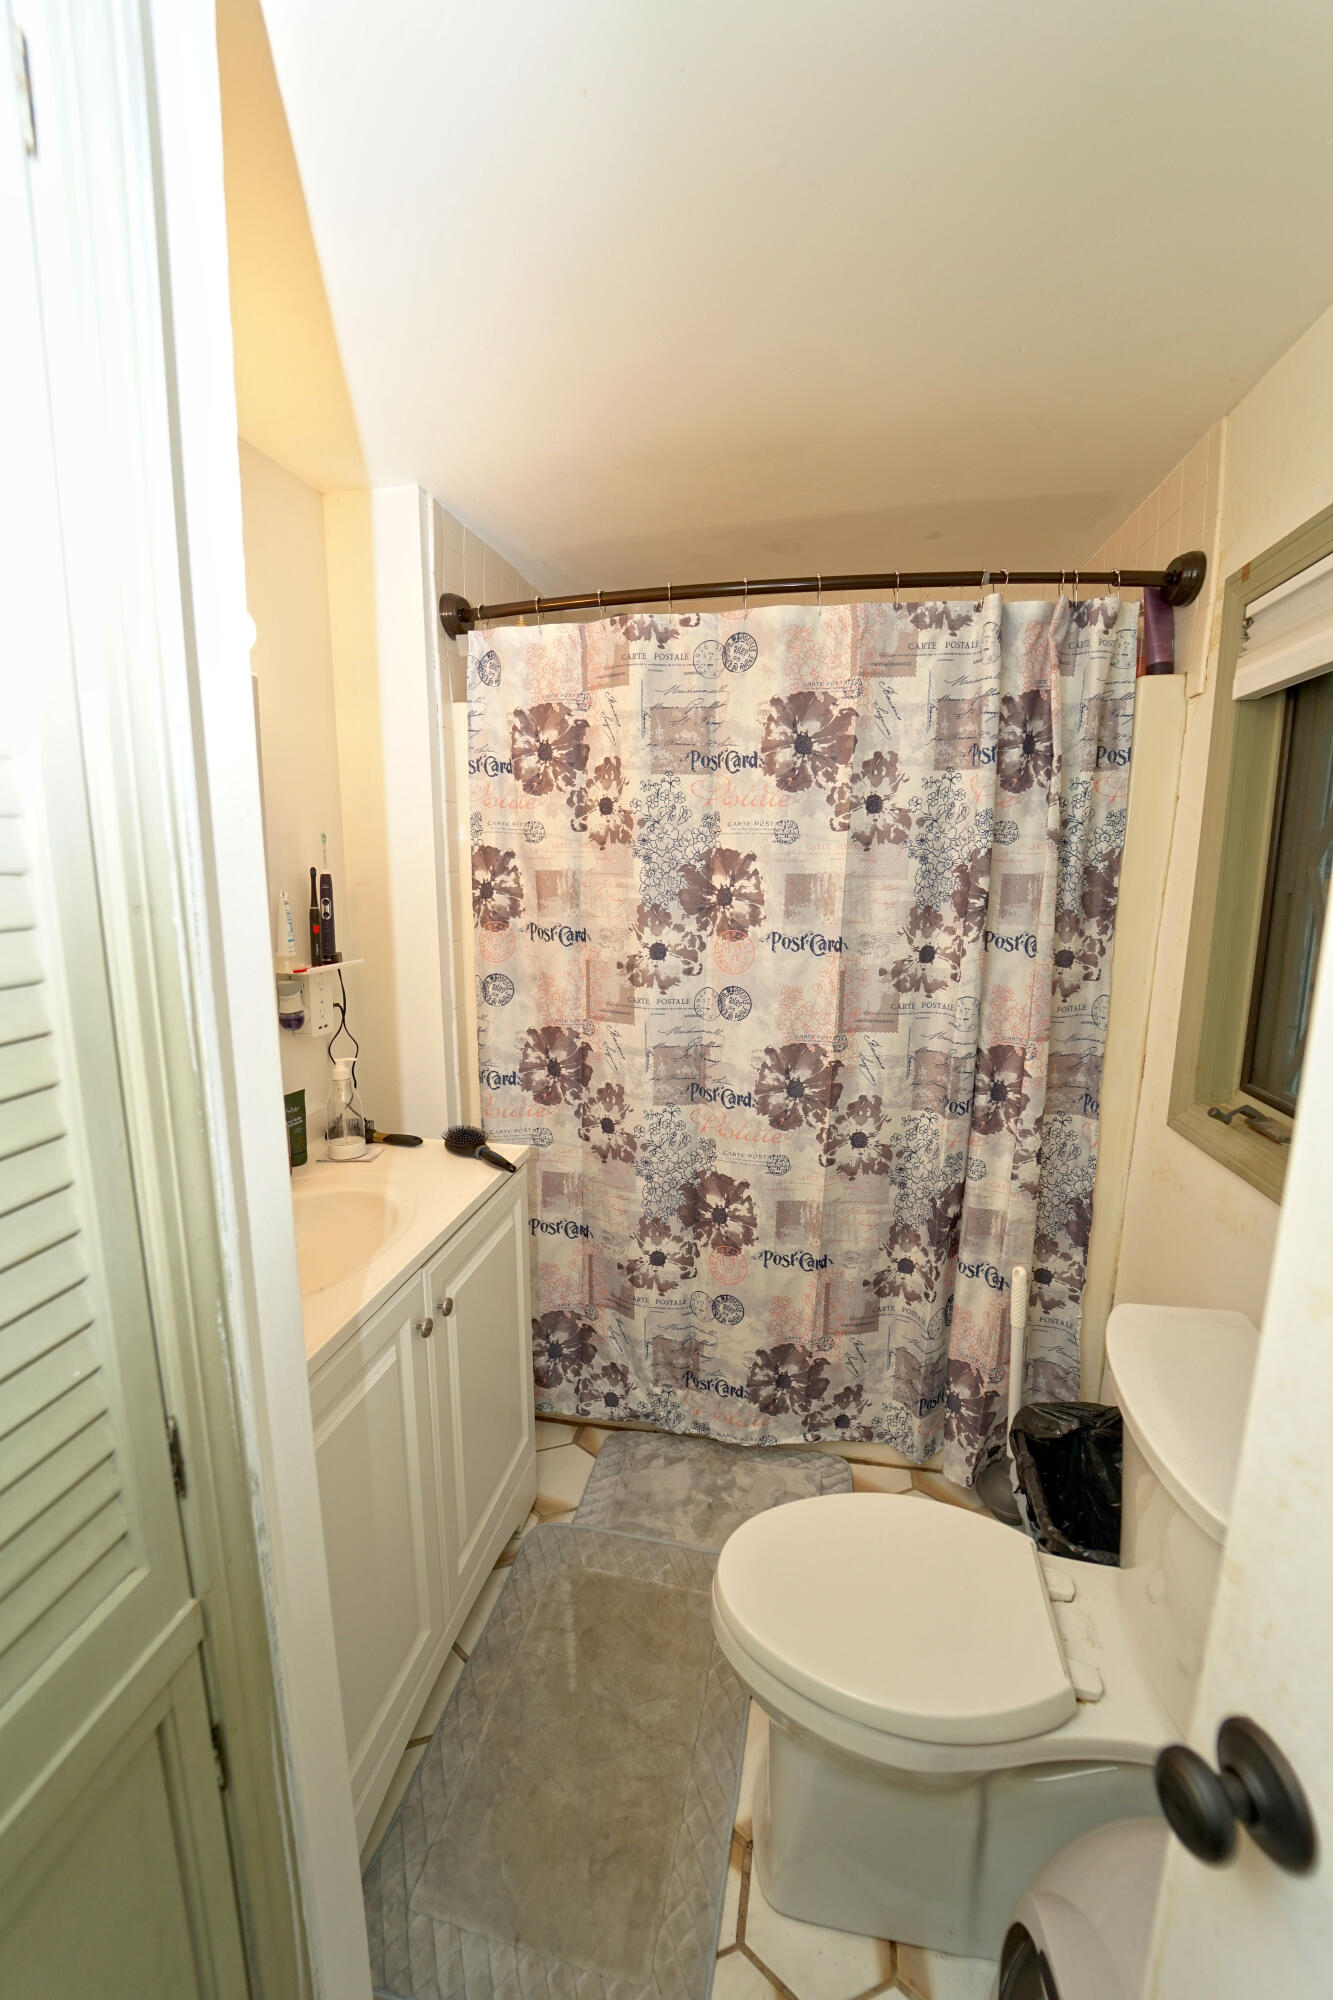 234 Lincoln Road, Hyannis, MA photo 7